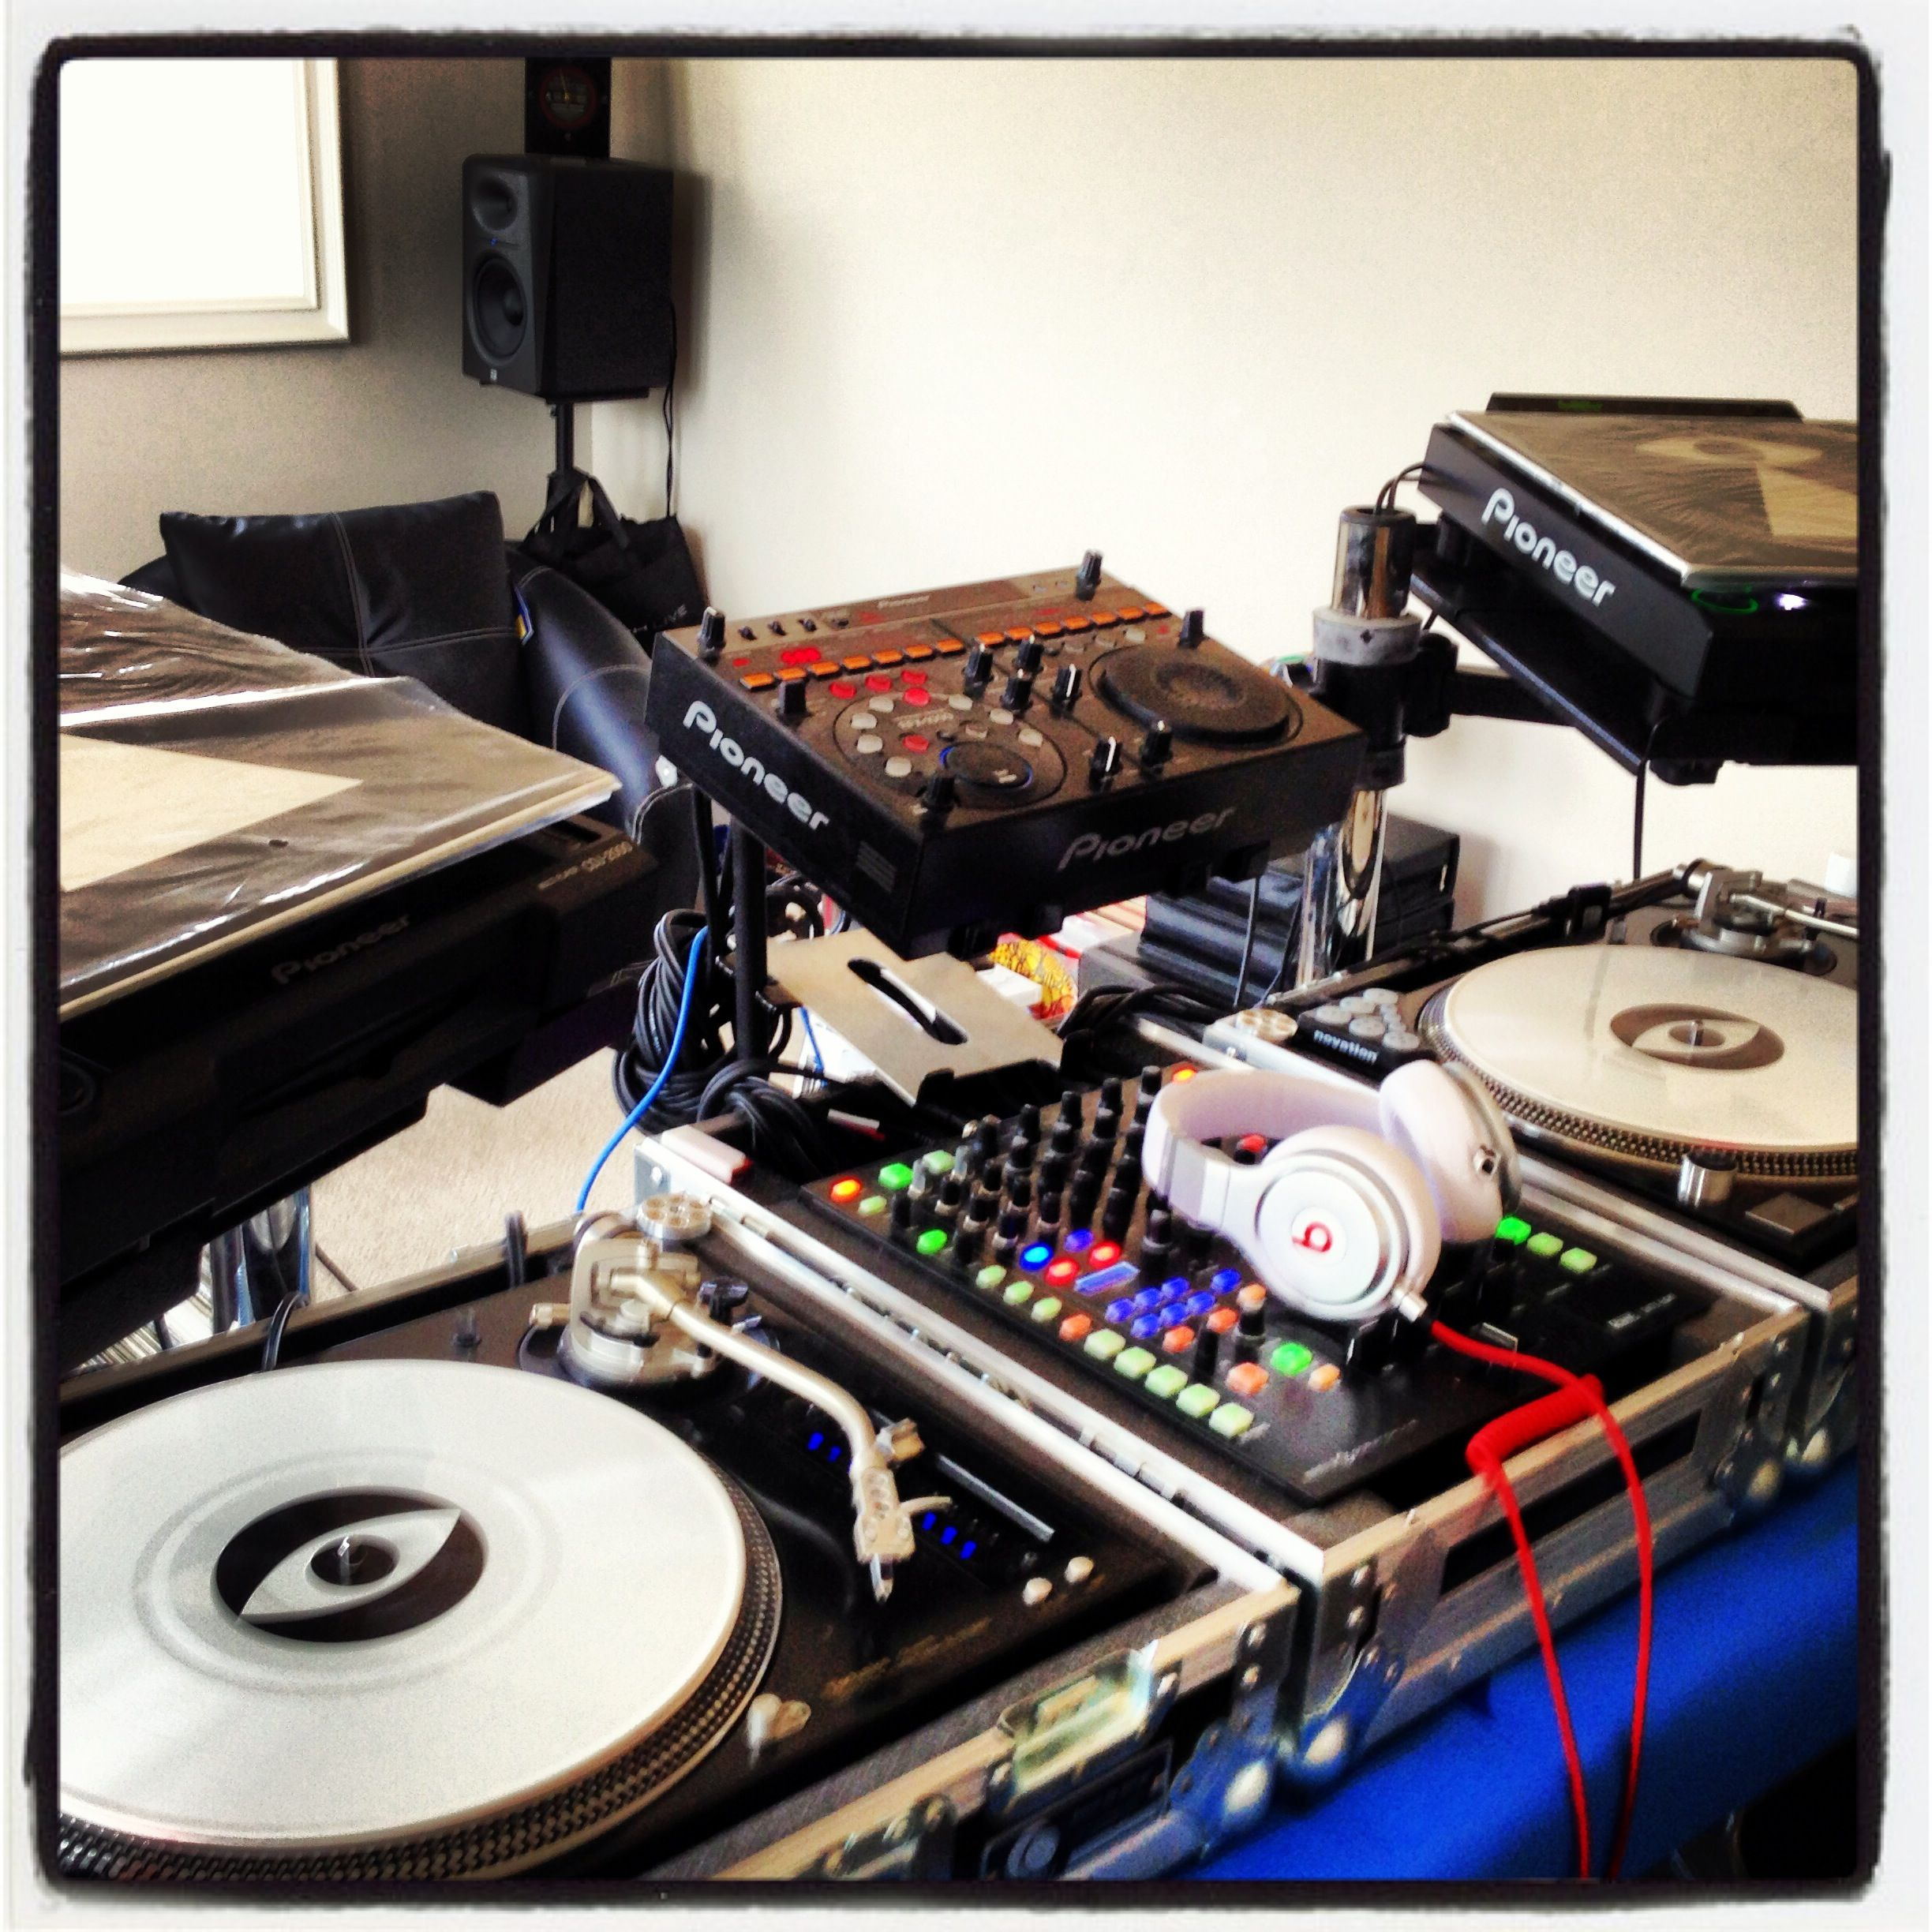 Keeping My Promo Only Serato White Control Vinyl I Cons Peeled And The Other Pair Sealed Dj Equipment Dj Setup Pioneer Dj